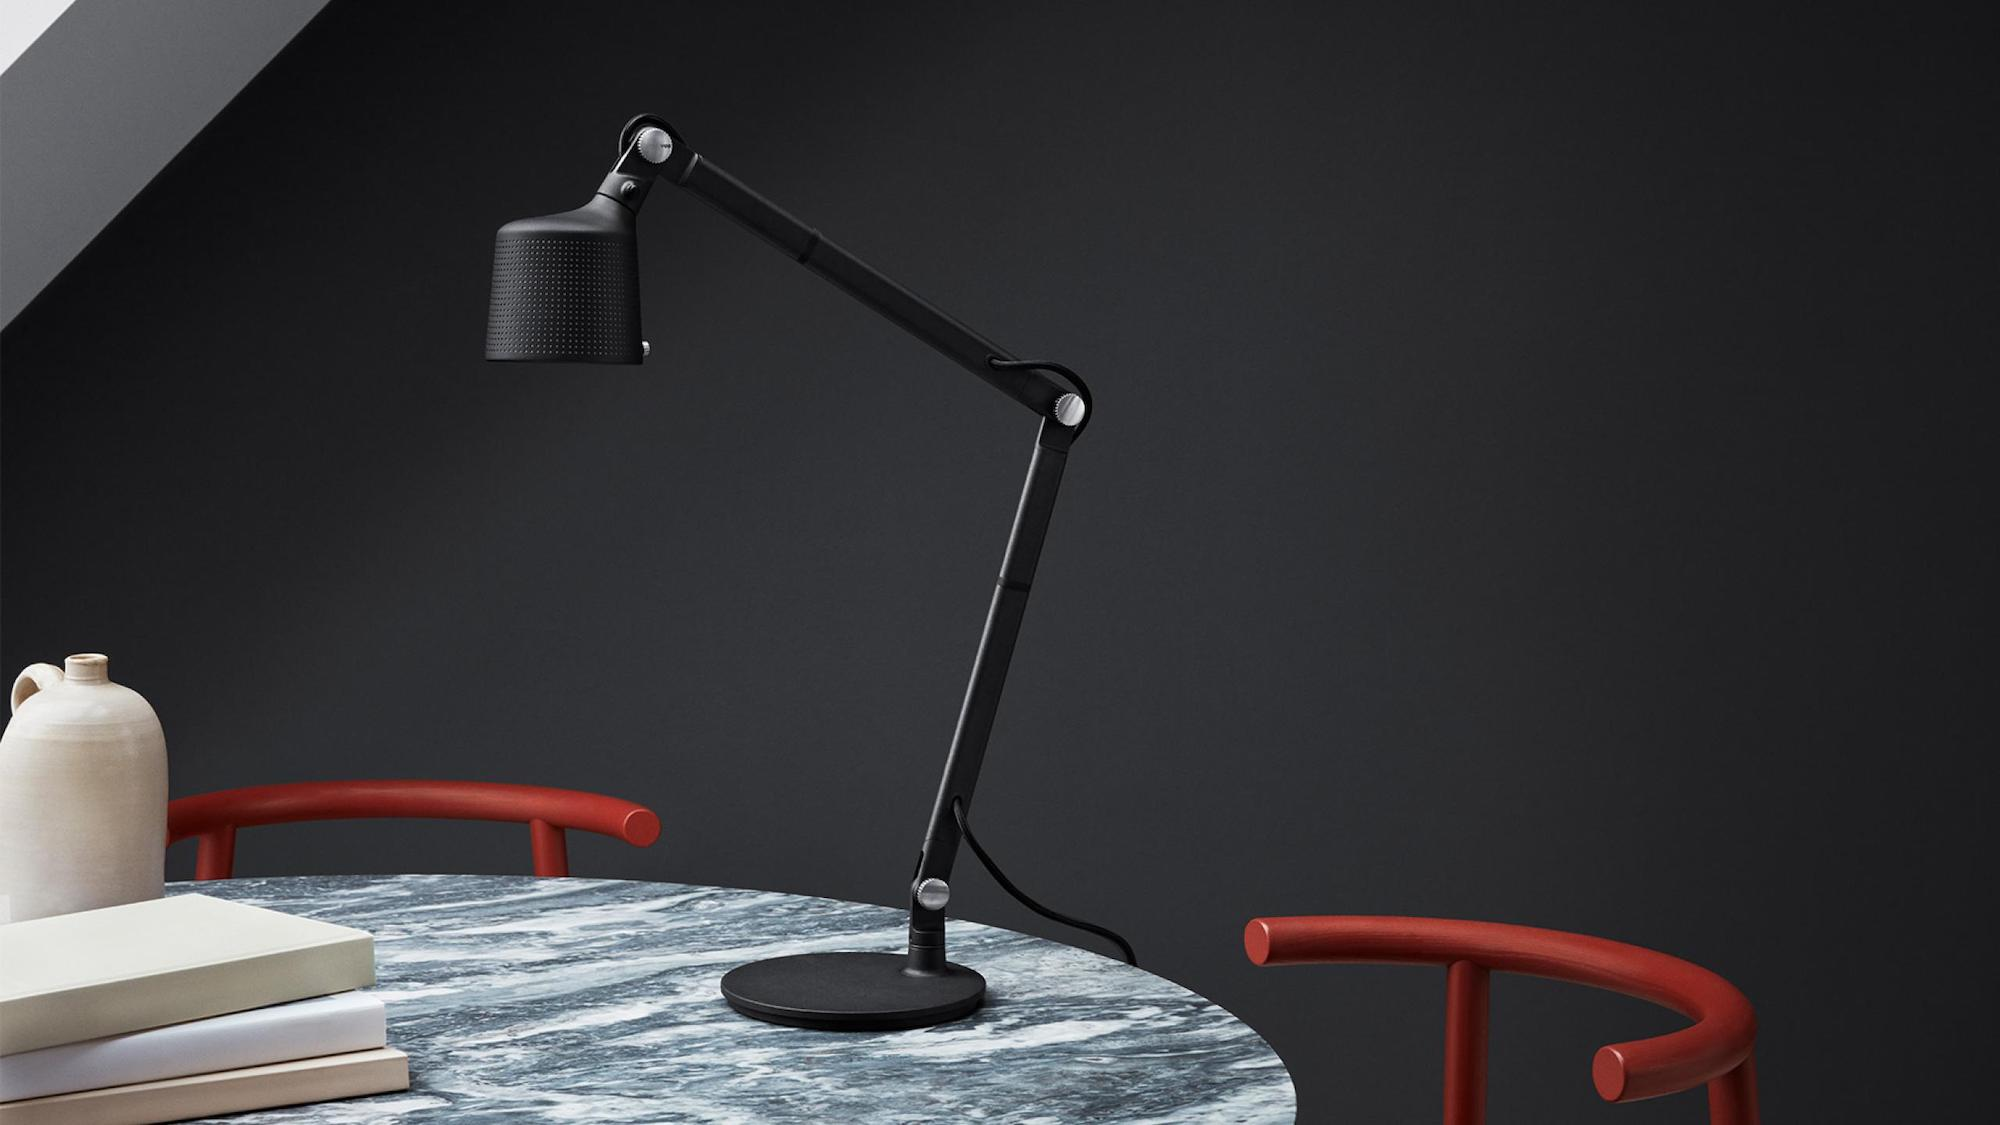 Vipp Desk Lamp Work Light adjusts to just the right position